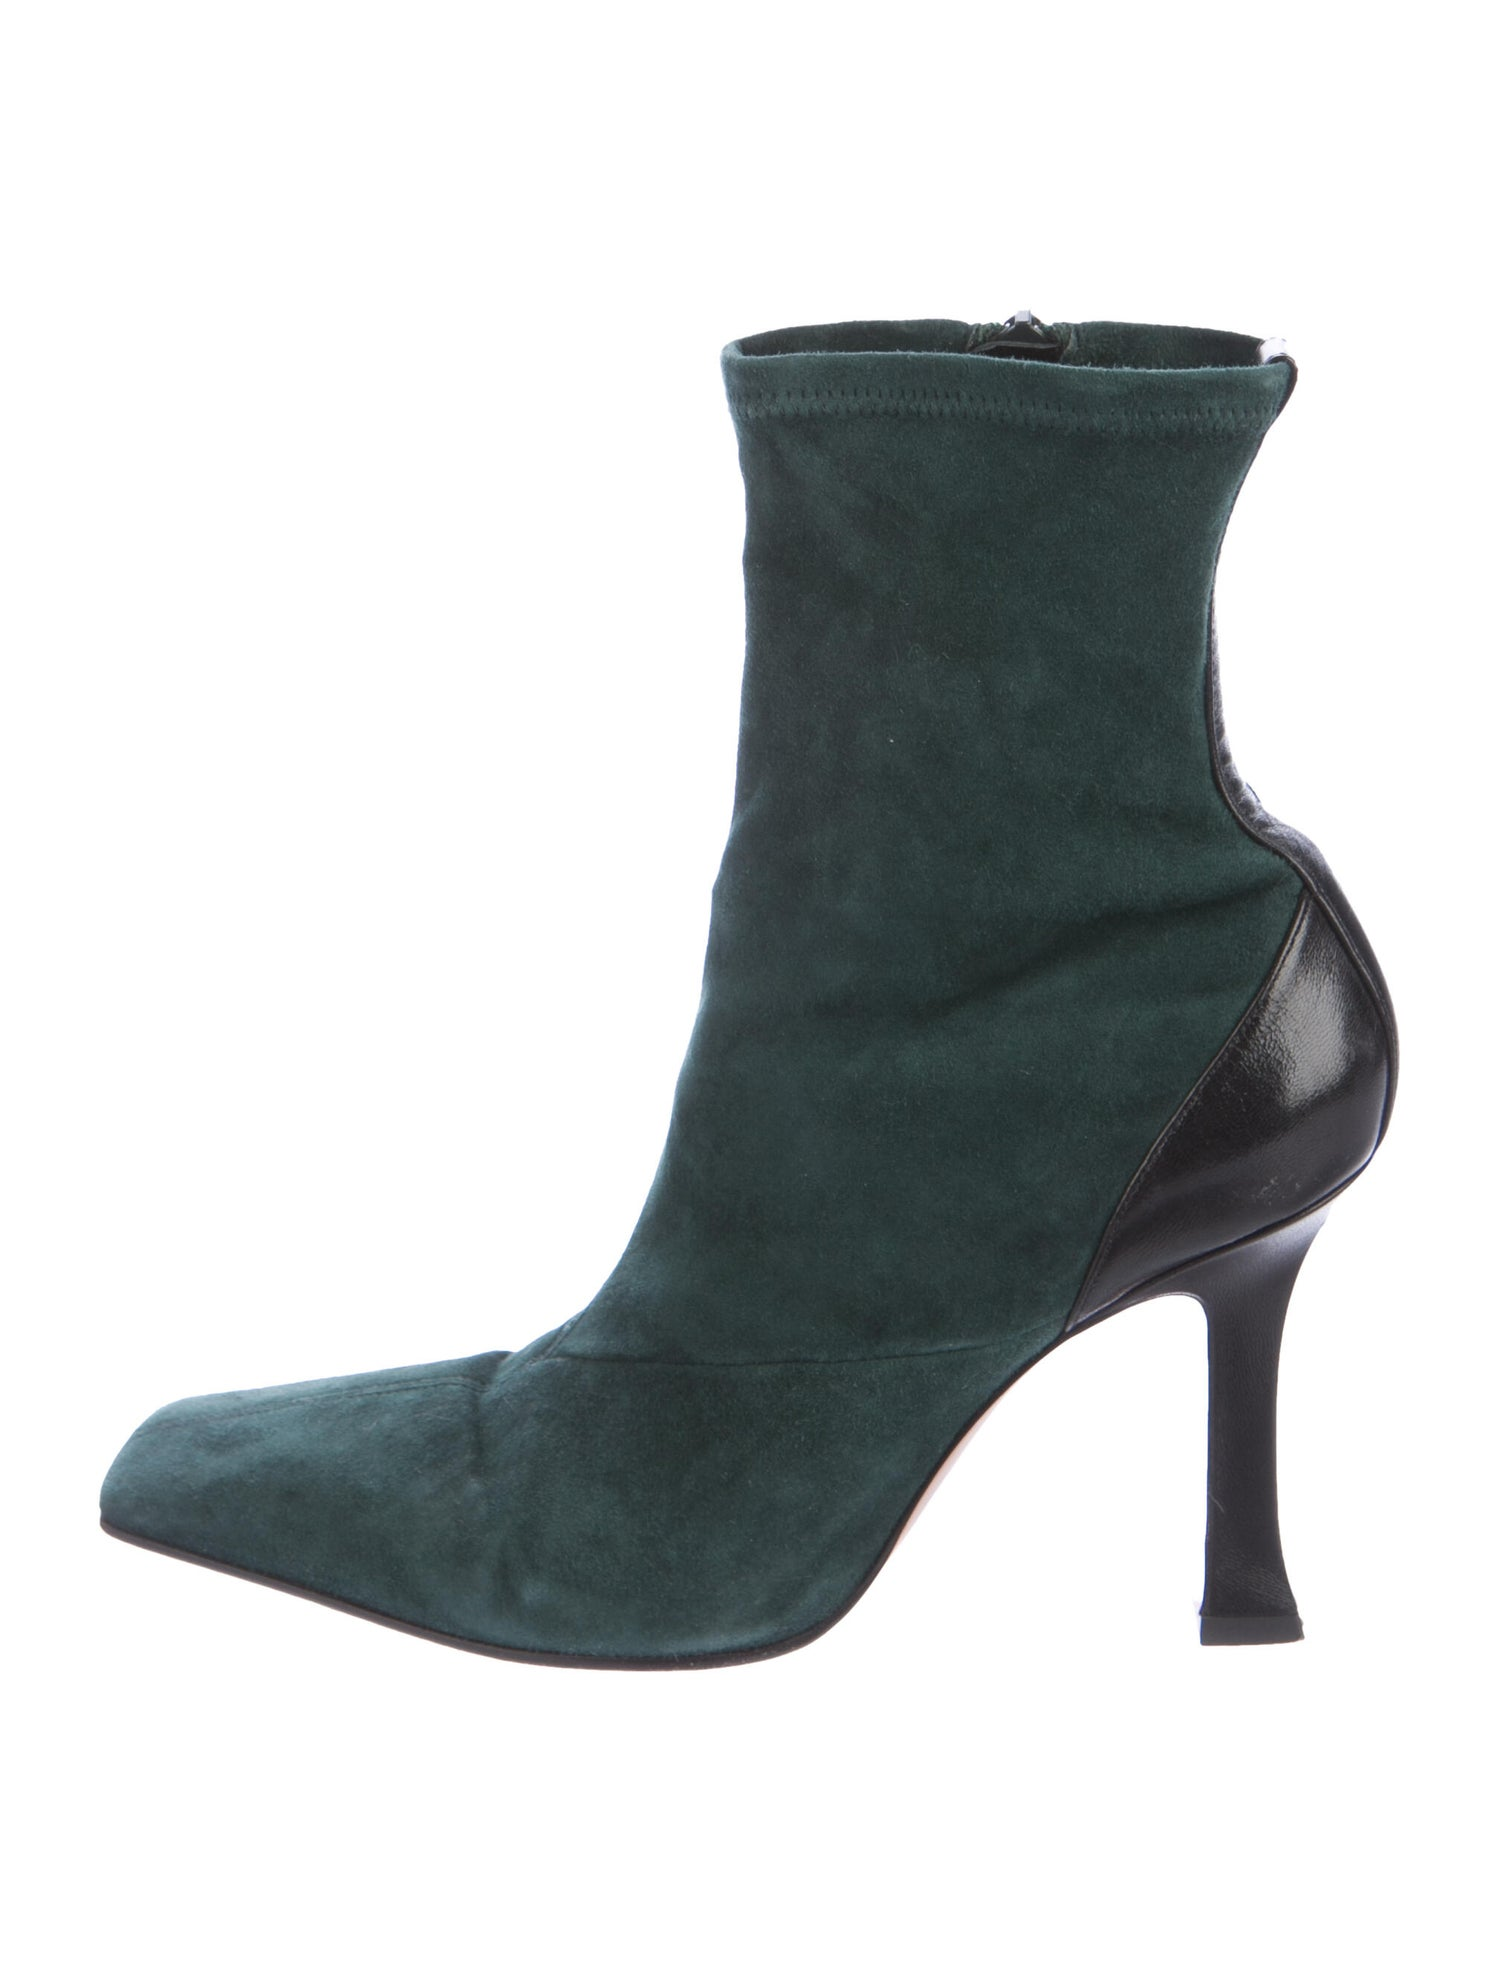 Madame Suede Sock Boots by Celine, available on therealreal.com for $717 Kendall Jenner Shoes SIMILAR PRODUCT